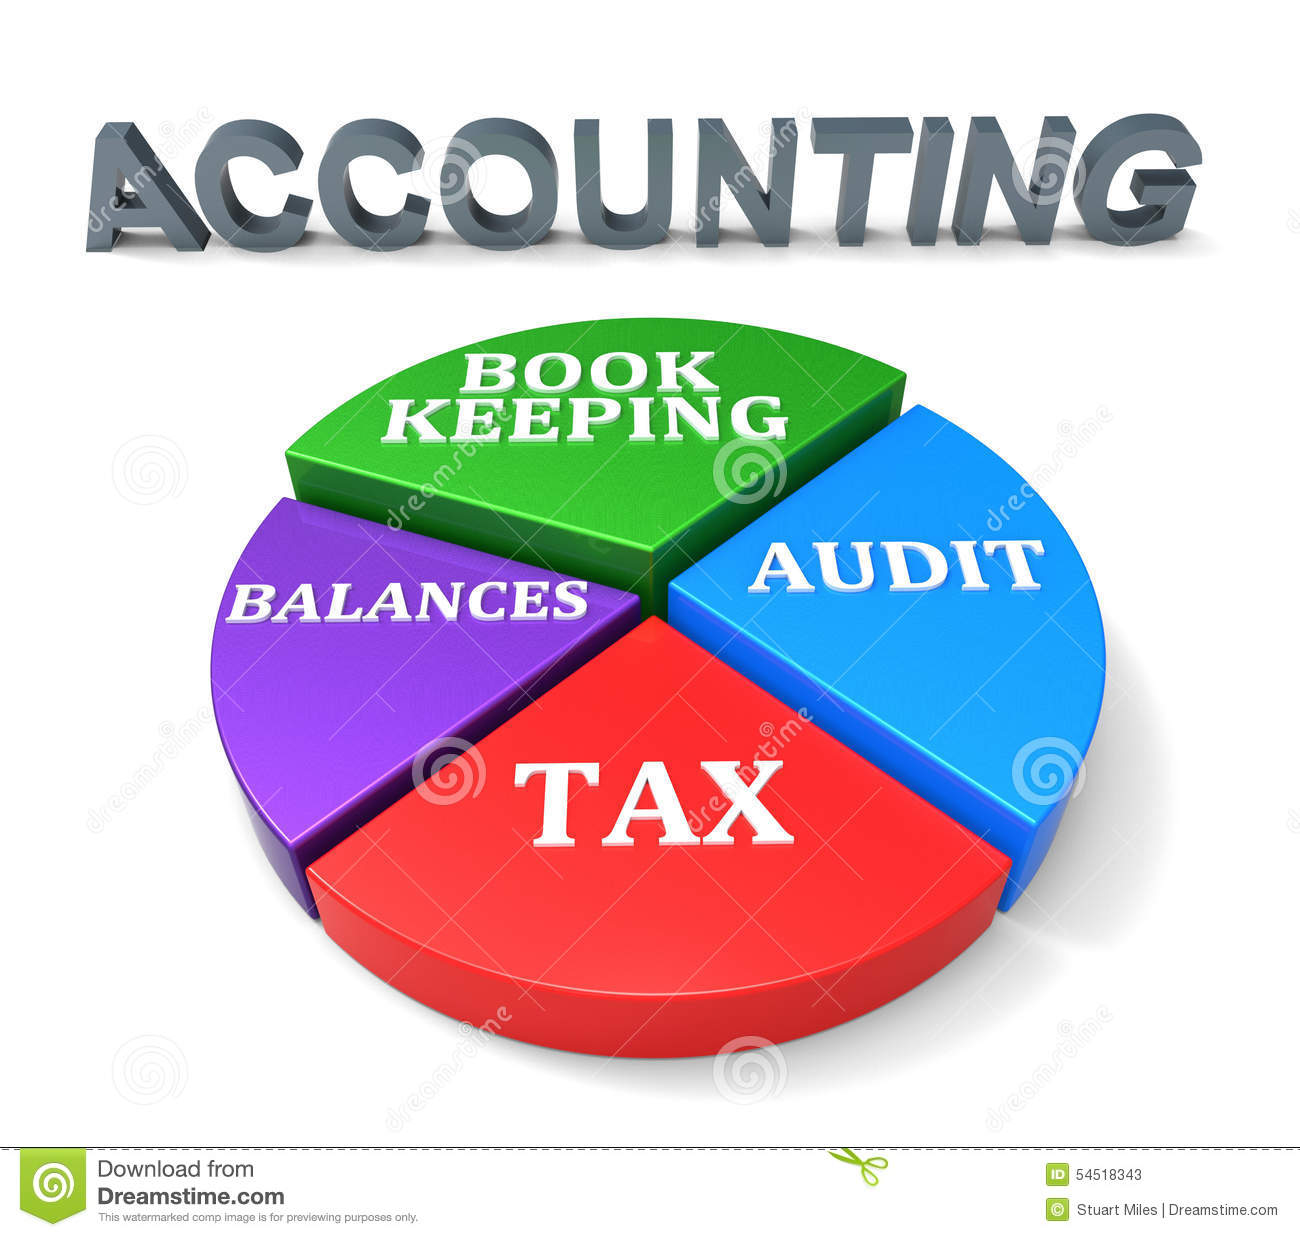 Accounting: Home